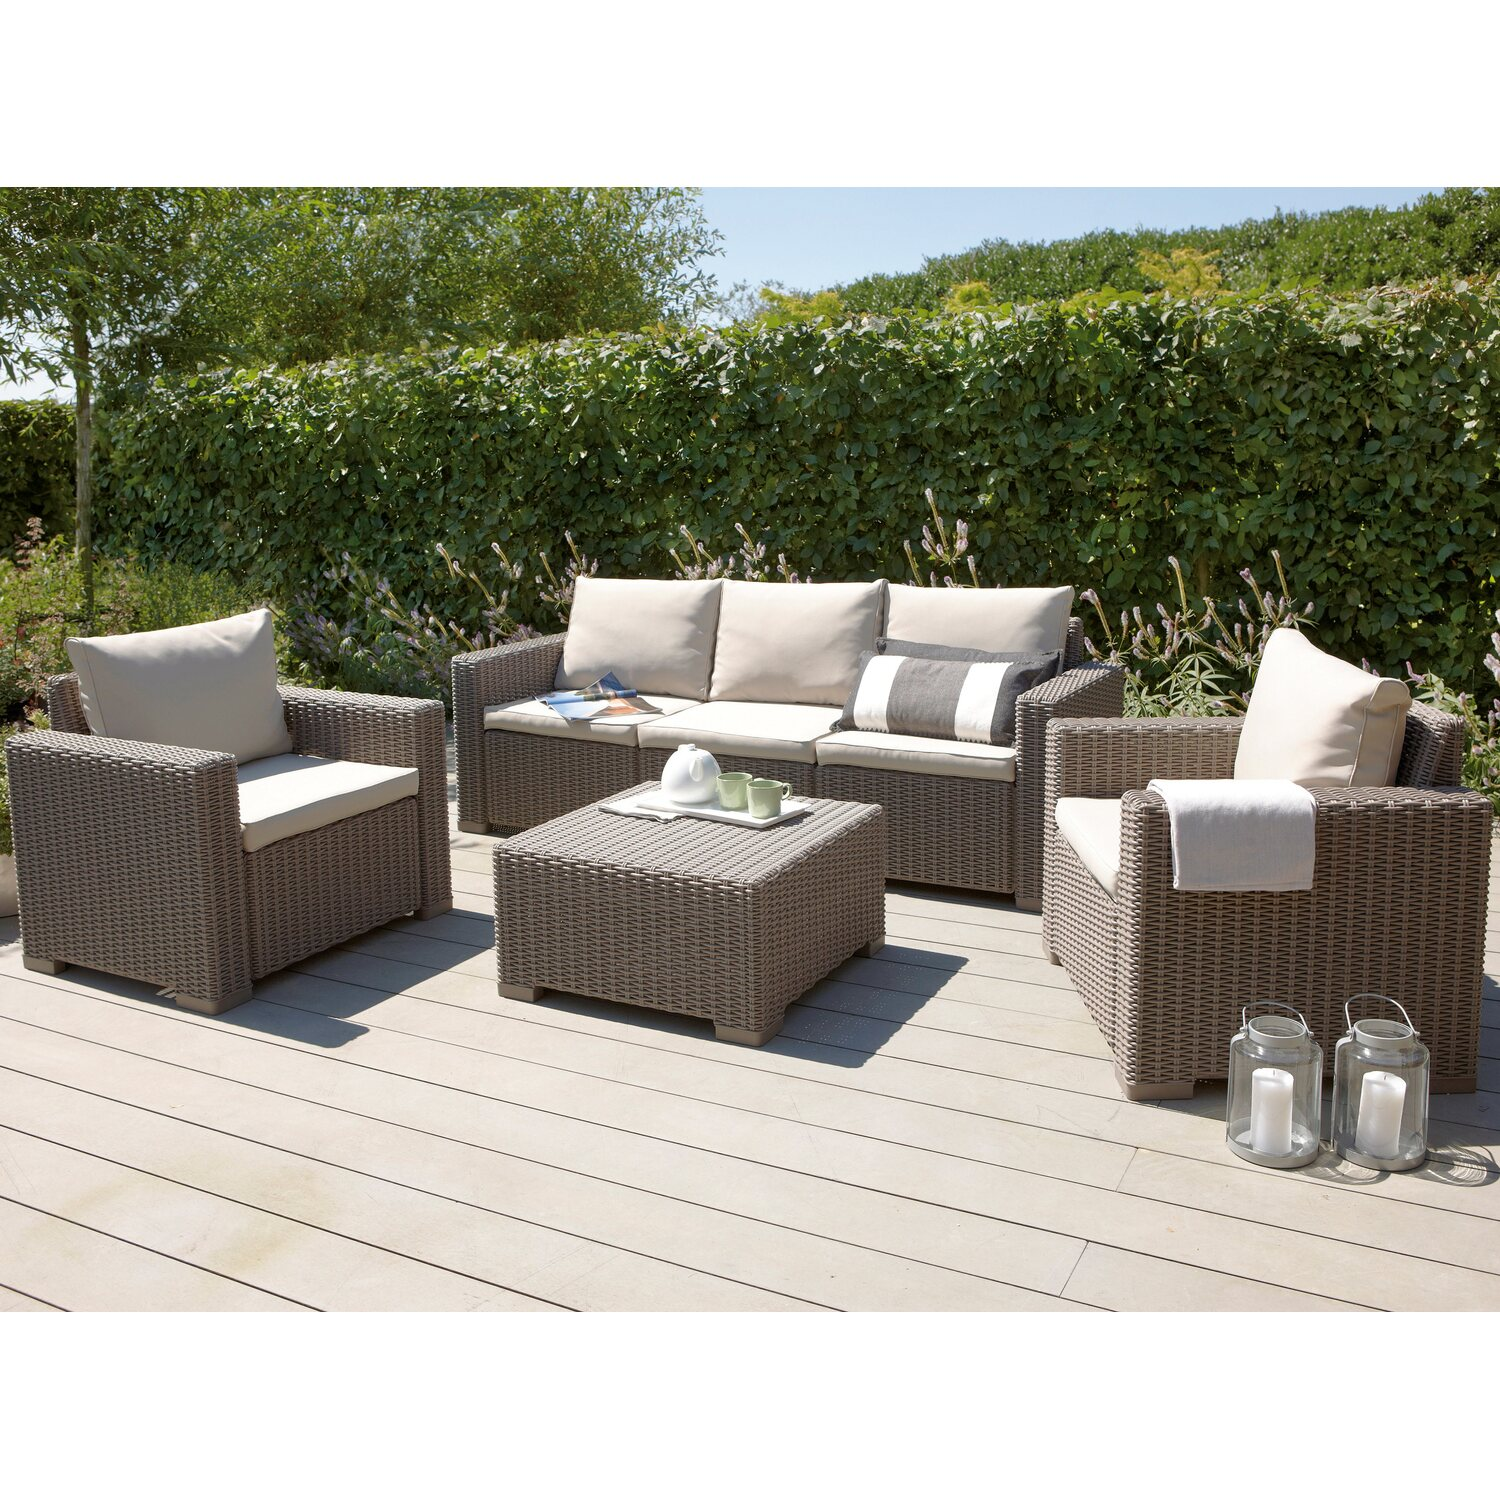 gartenm bel lounge gruppe mombasa 4 tlg cappuccino sand kaufen bei obi. Black Bedroom Furniture Sets. Home Design Ideas